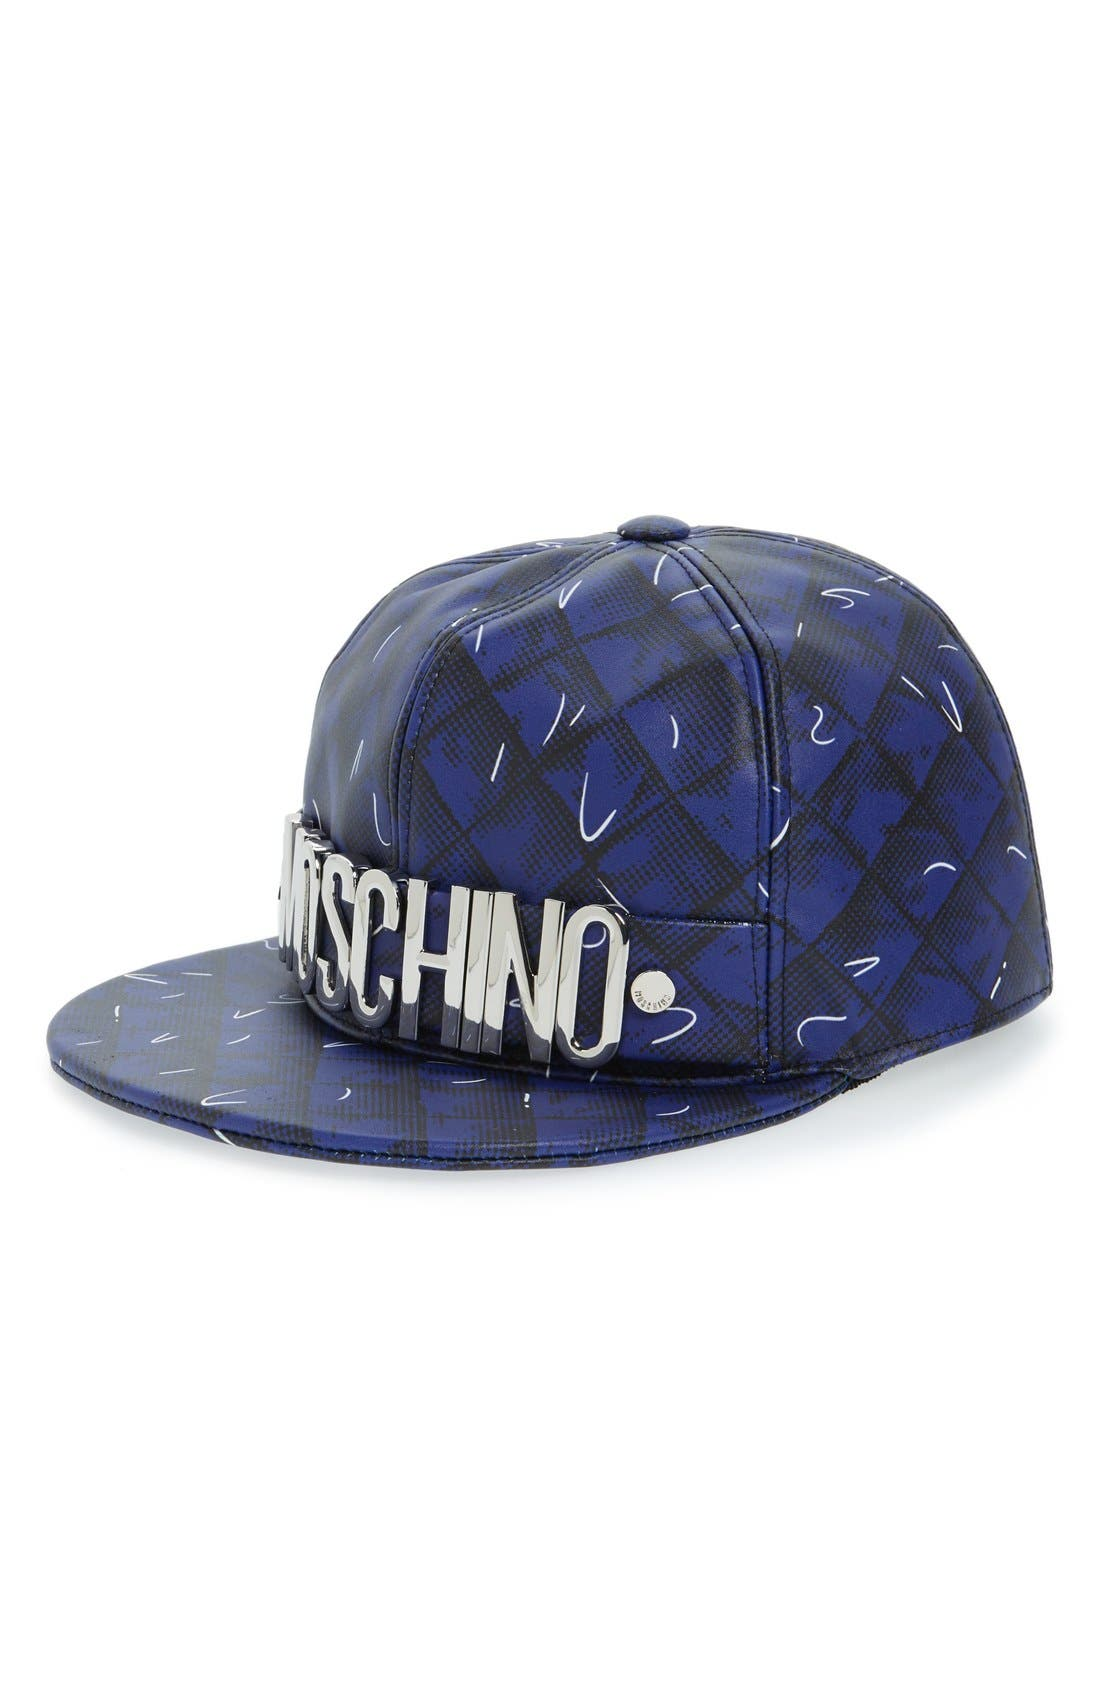 Alternate Image 1 Selected - Moschino 'Shadow' Leather Baseball Cap